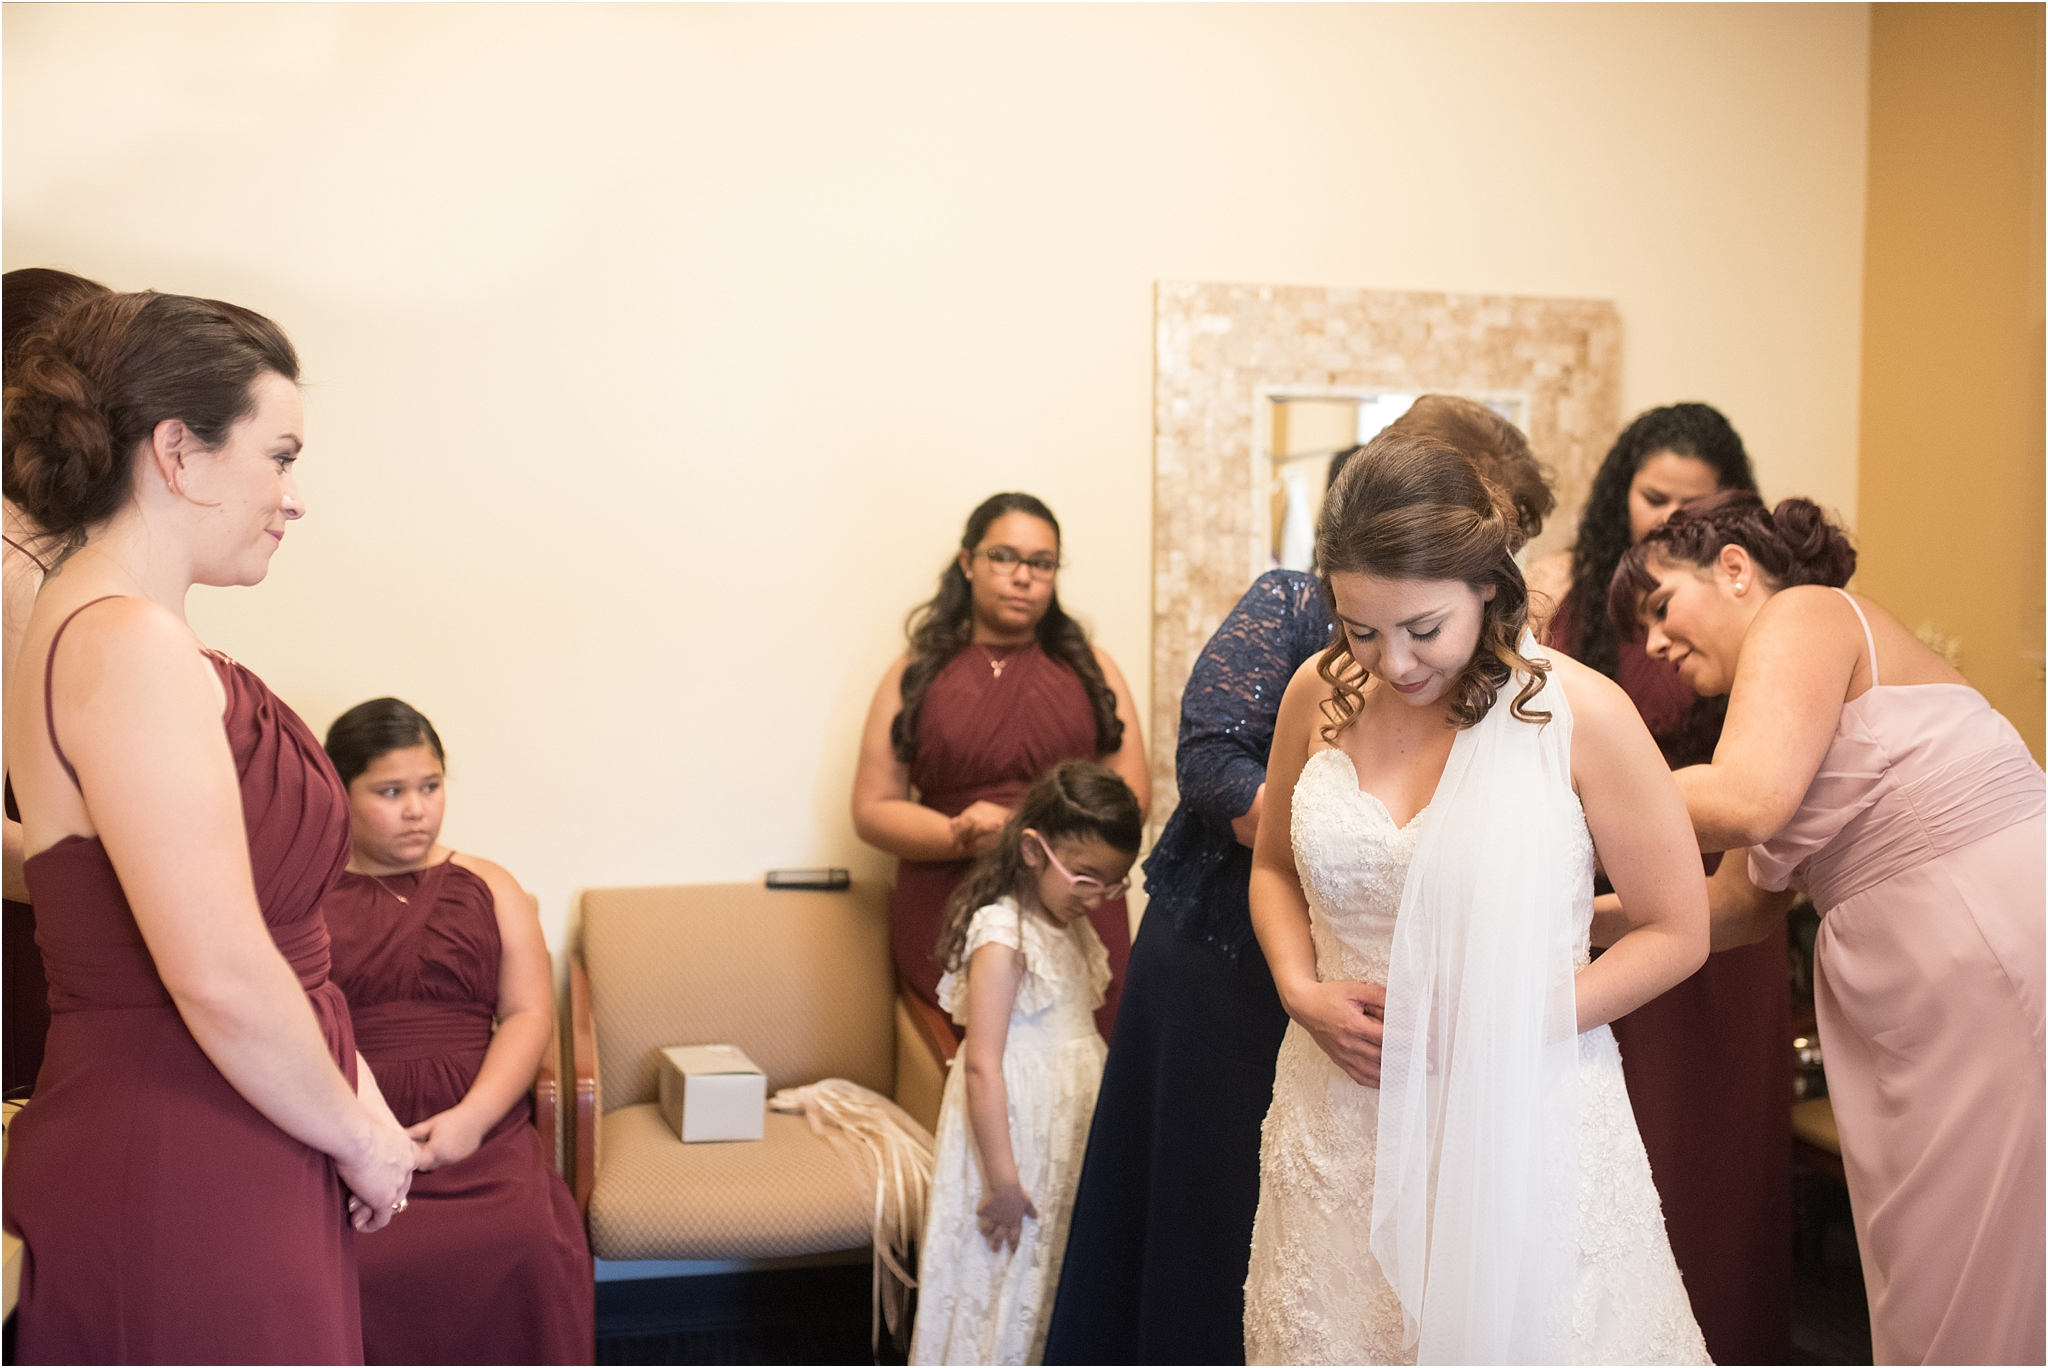 kayla kitts photography - albuquerque wedding photographer - hairpins and scissors - a cake odyssey - new mexico wedding photographer_0010.jpg